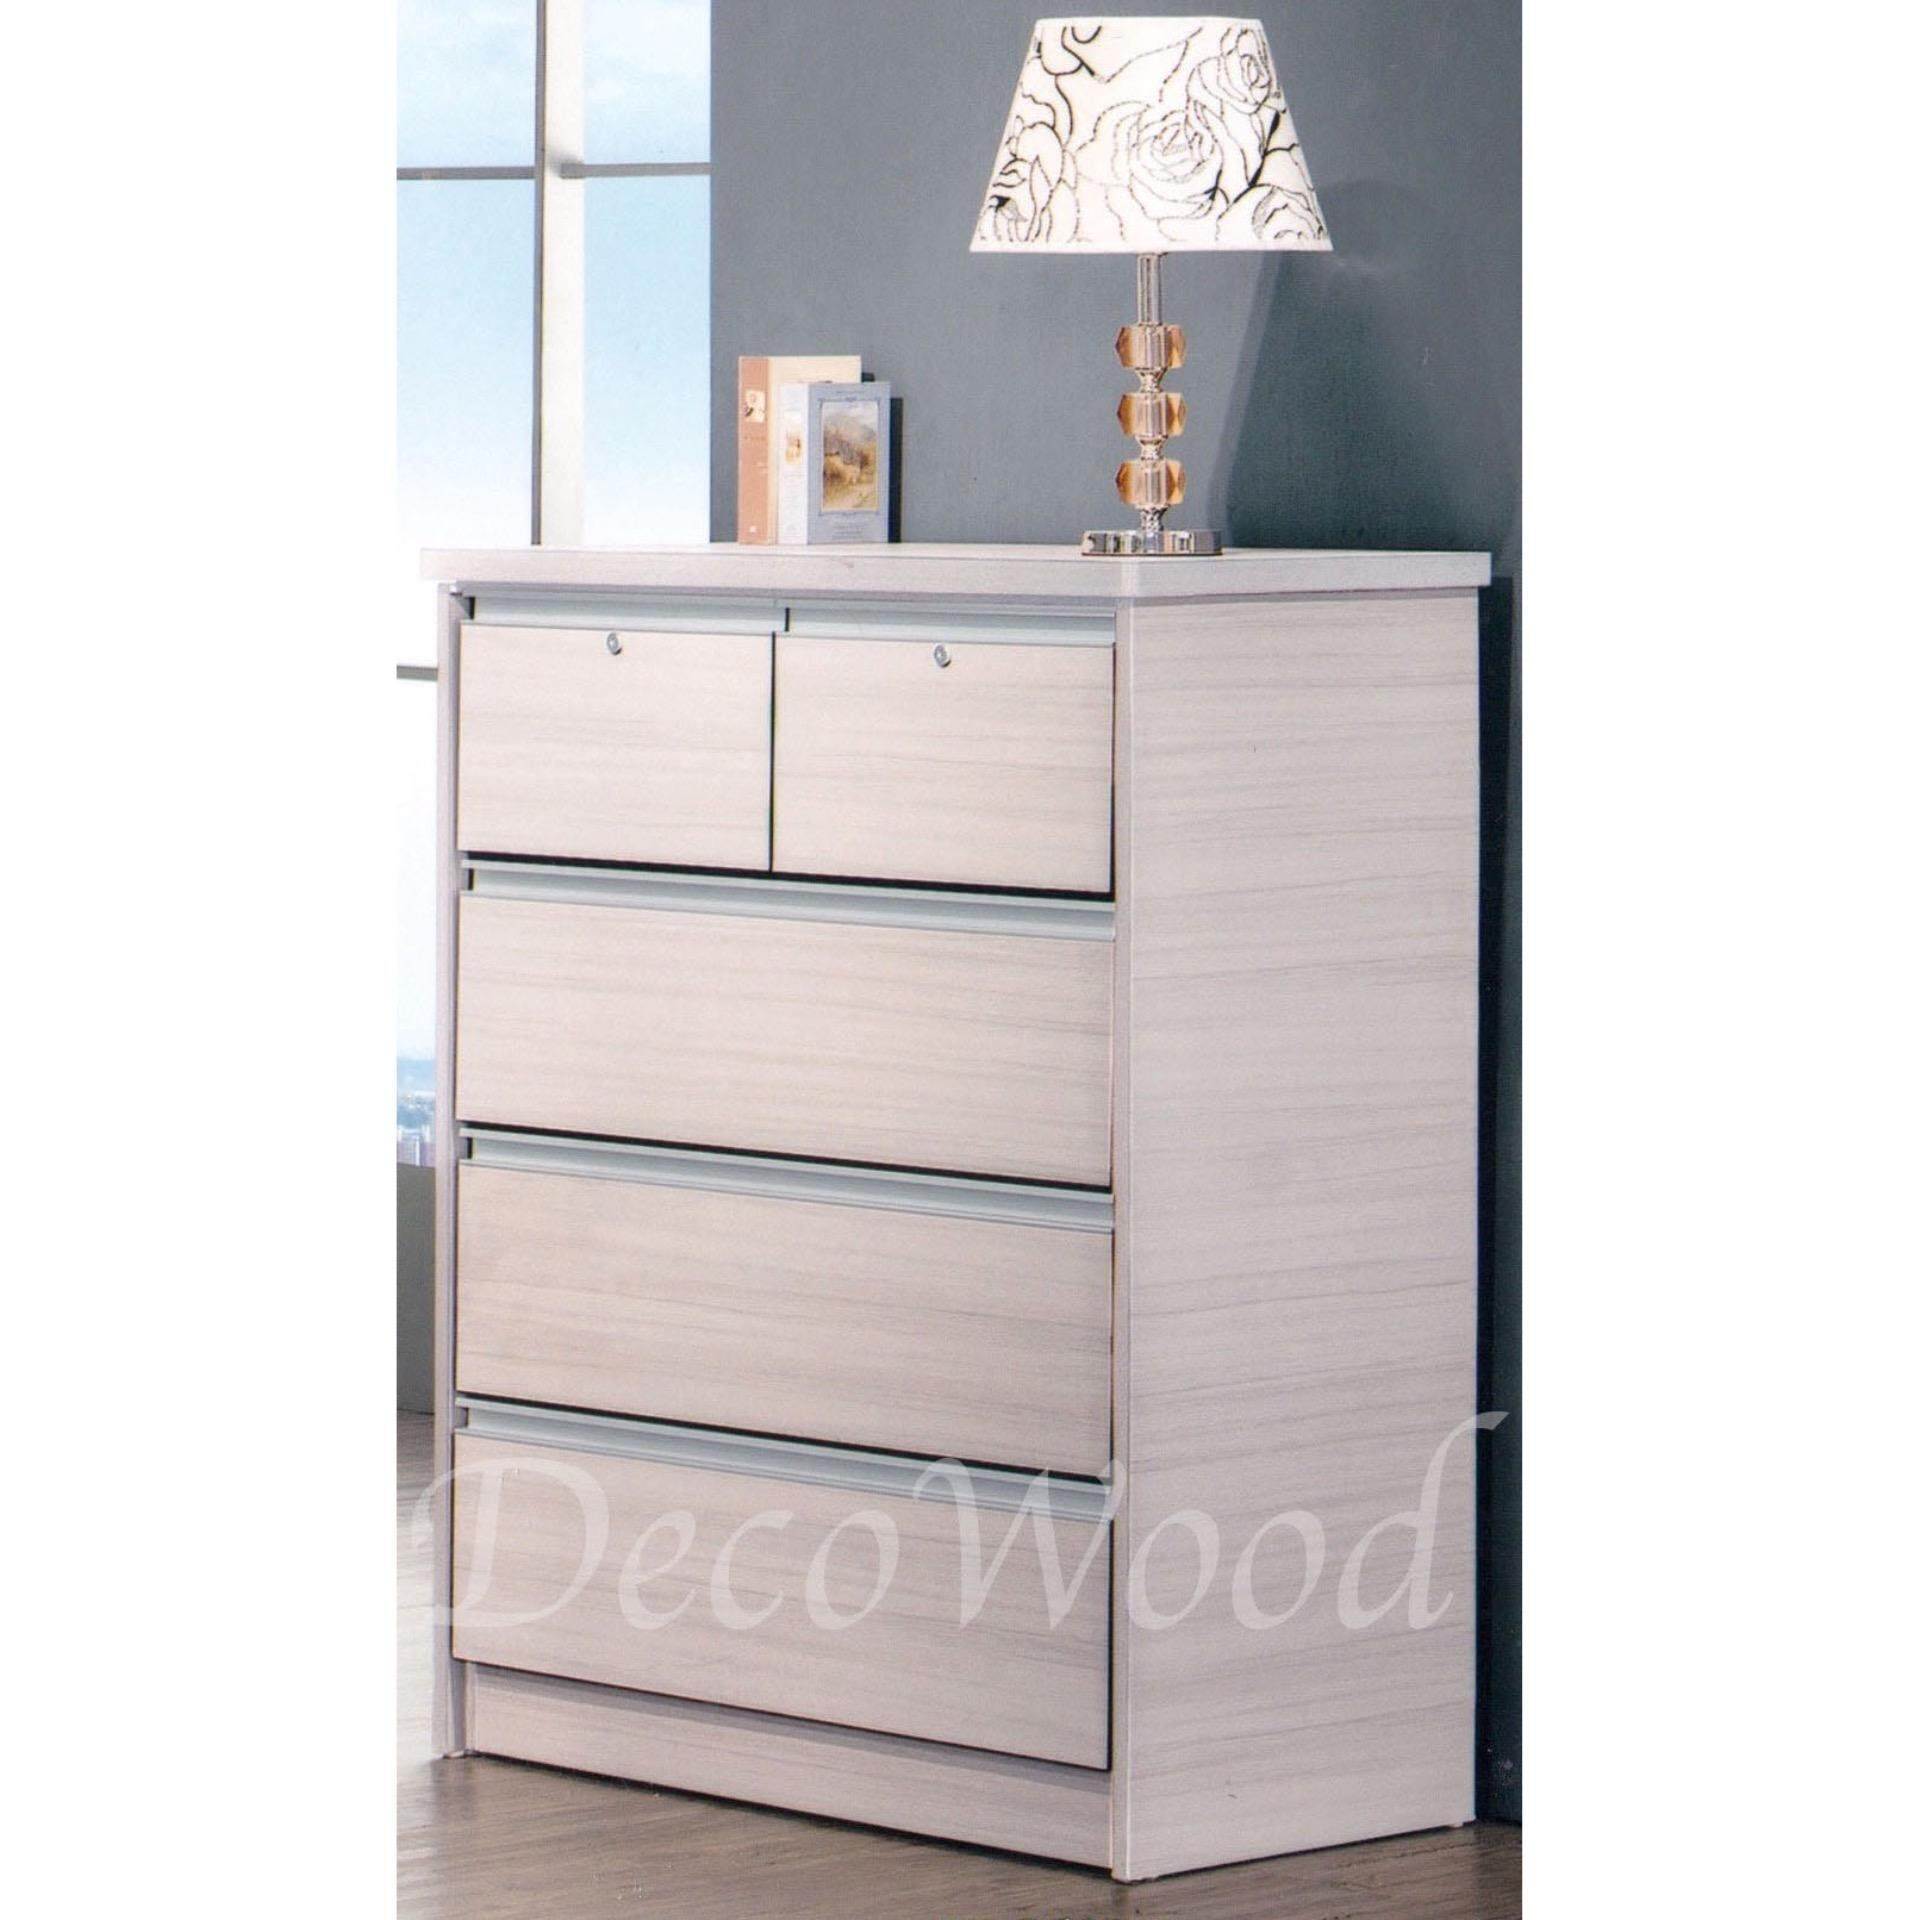 Ready-Fixed 5 Pull-Out Door Solid Strong Drawer Chest (Cream White) Pre Order 2 Week L838MM X W460MM X H1117MM